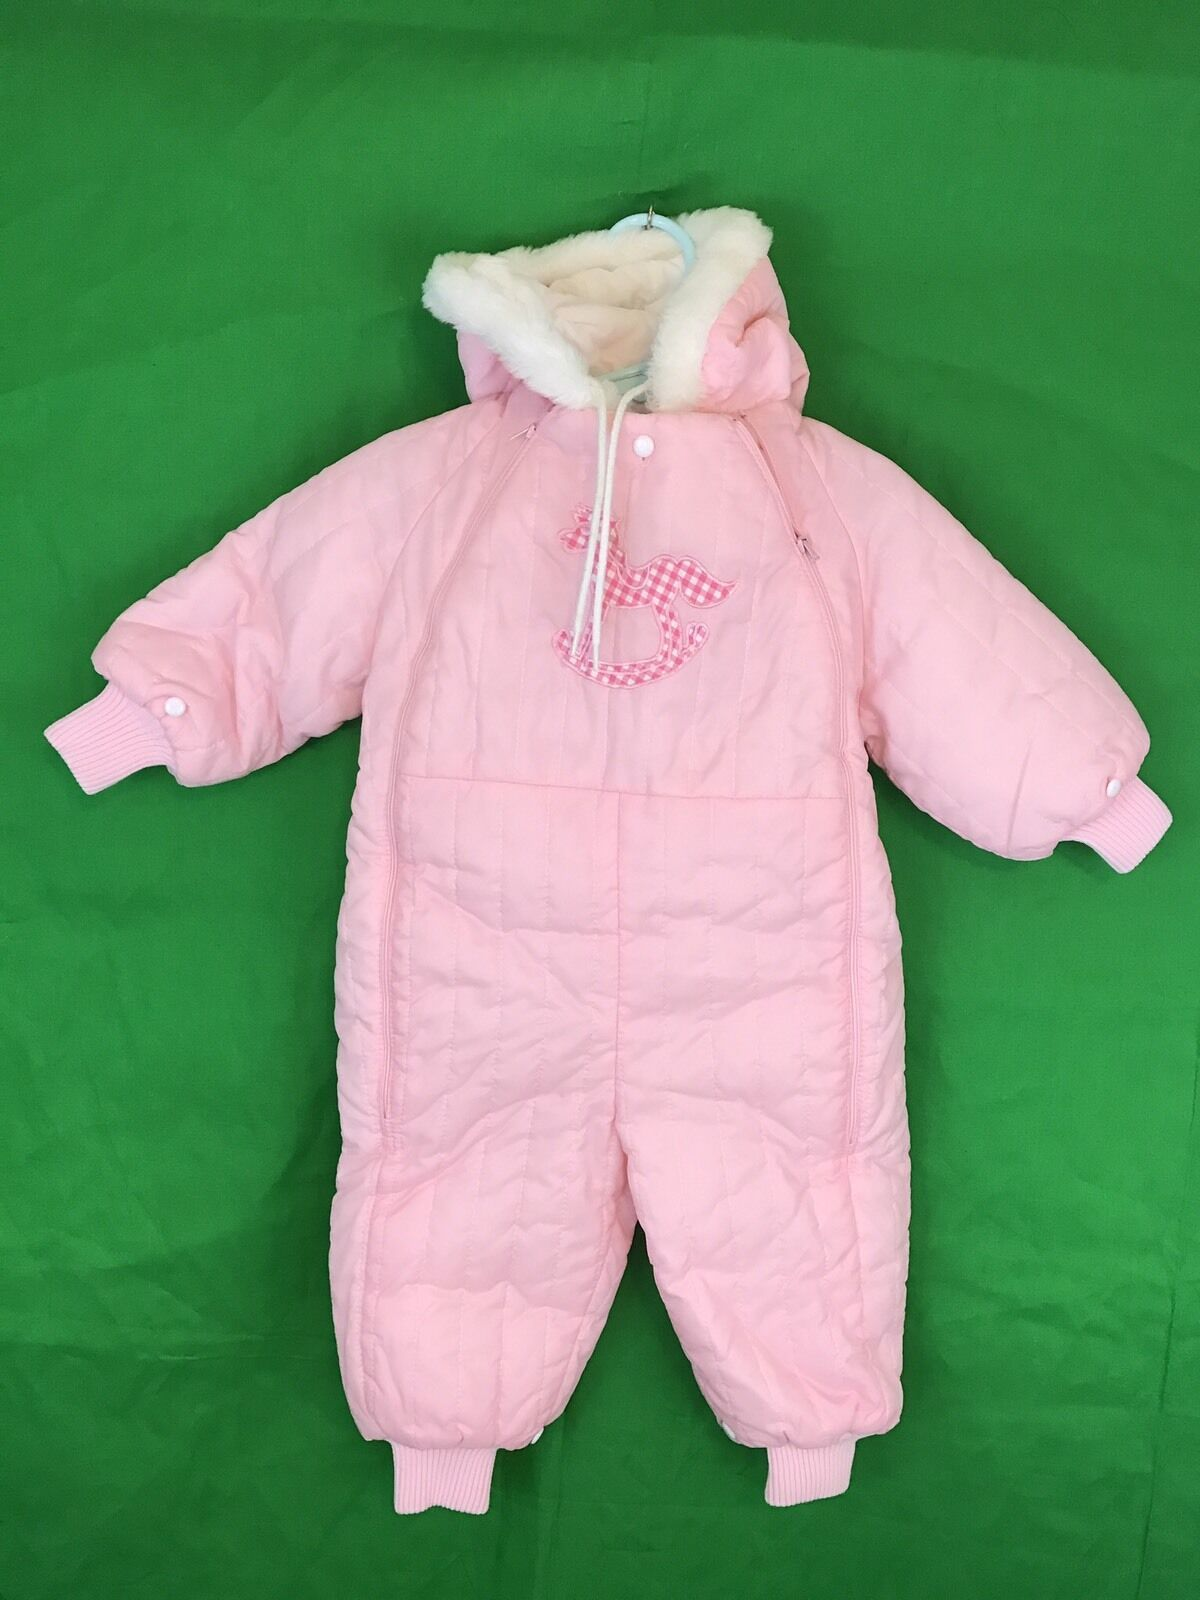 Quiltex Baby Girls Quilted Overalls Outfit Size 3 6 9 Months Pink White Bear